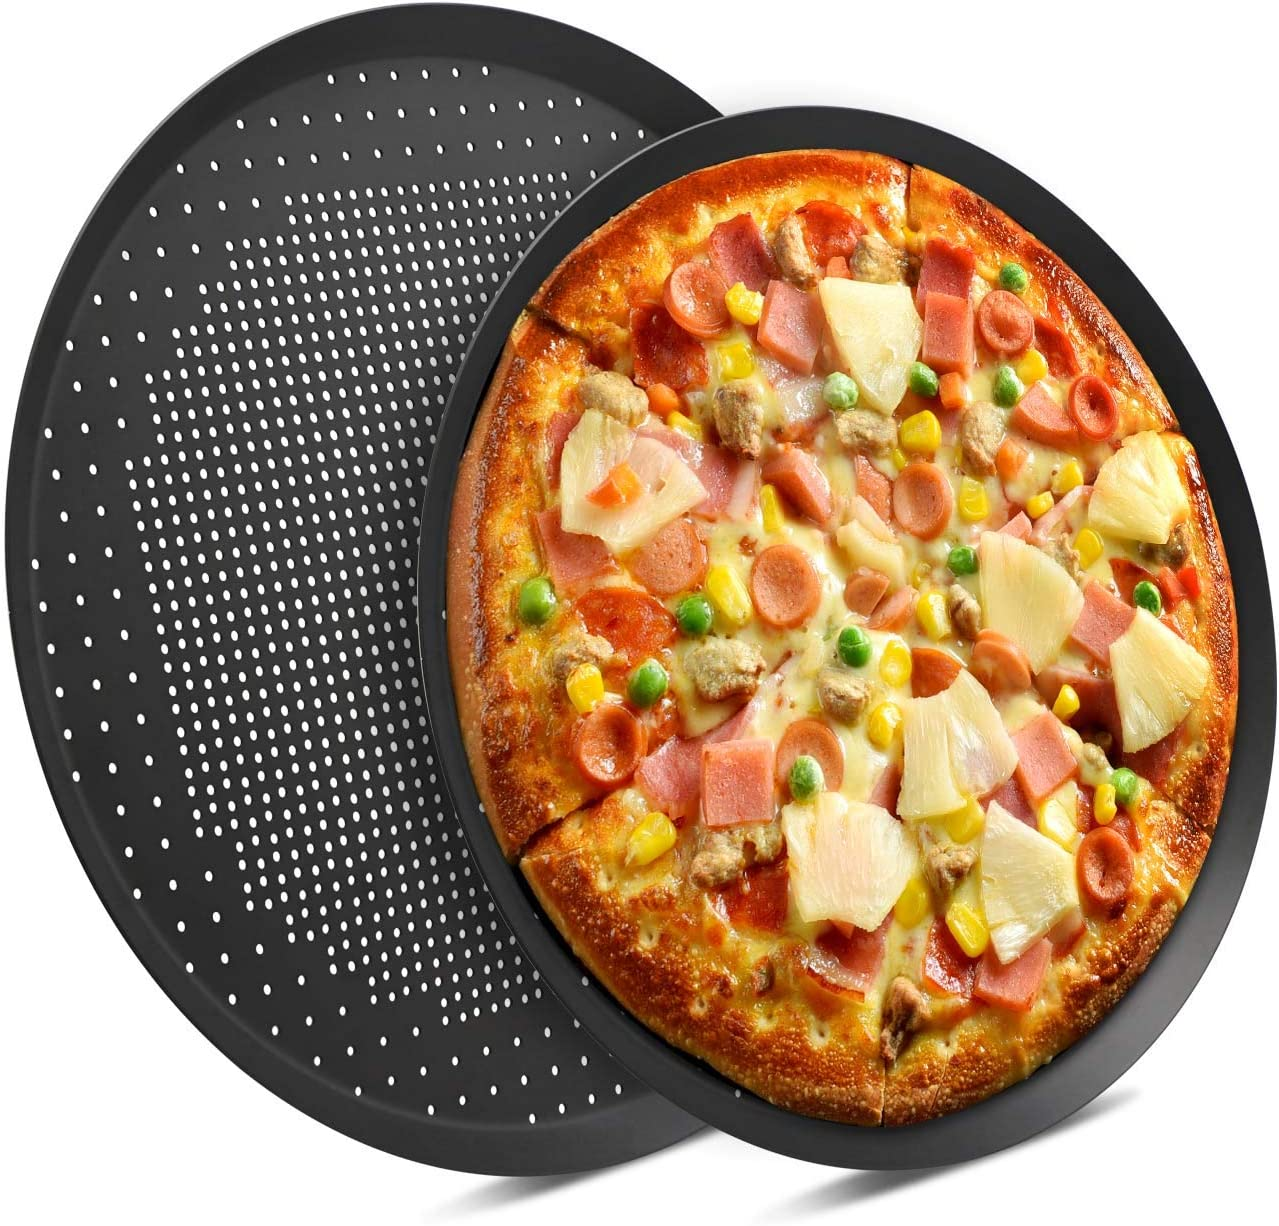 Pizza Pans with Holes, Beasea 2 pack 14 & 16 Inch Nonstick Pizza Crisper Pan Vented Pizza Baking Tray Bakeware Tool Round Pizza Pans for Pie, Cookie, Cake